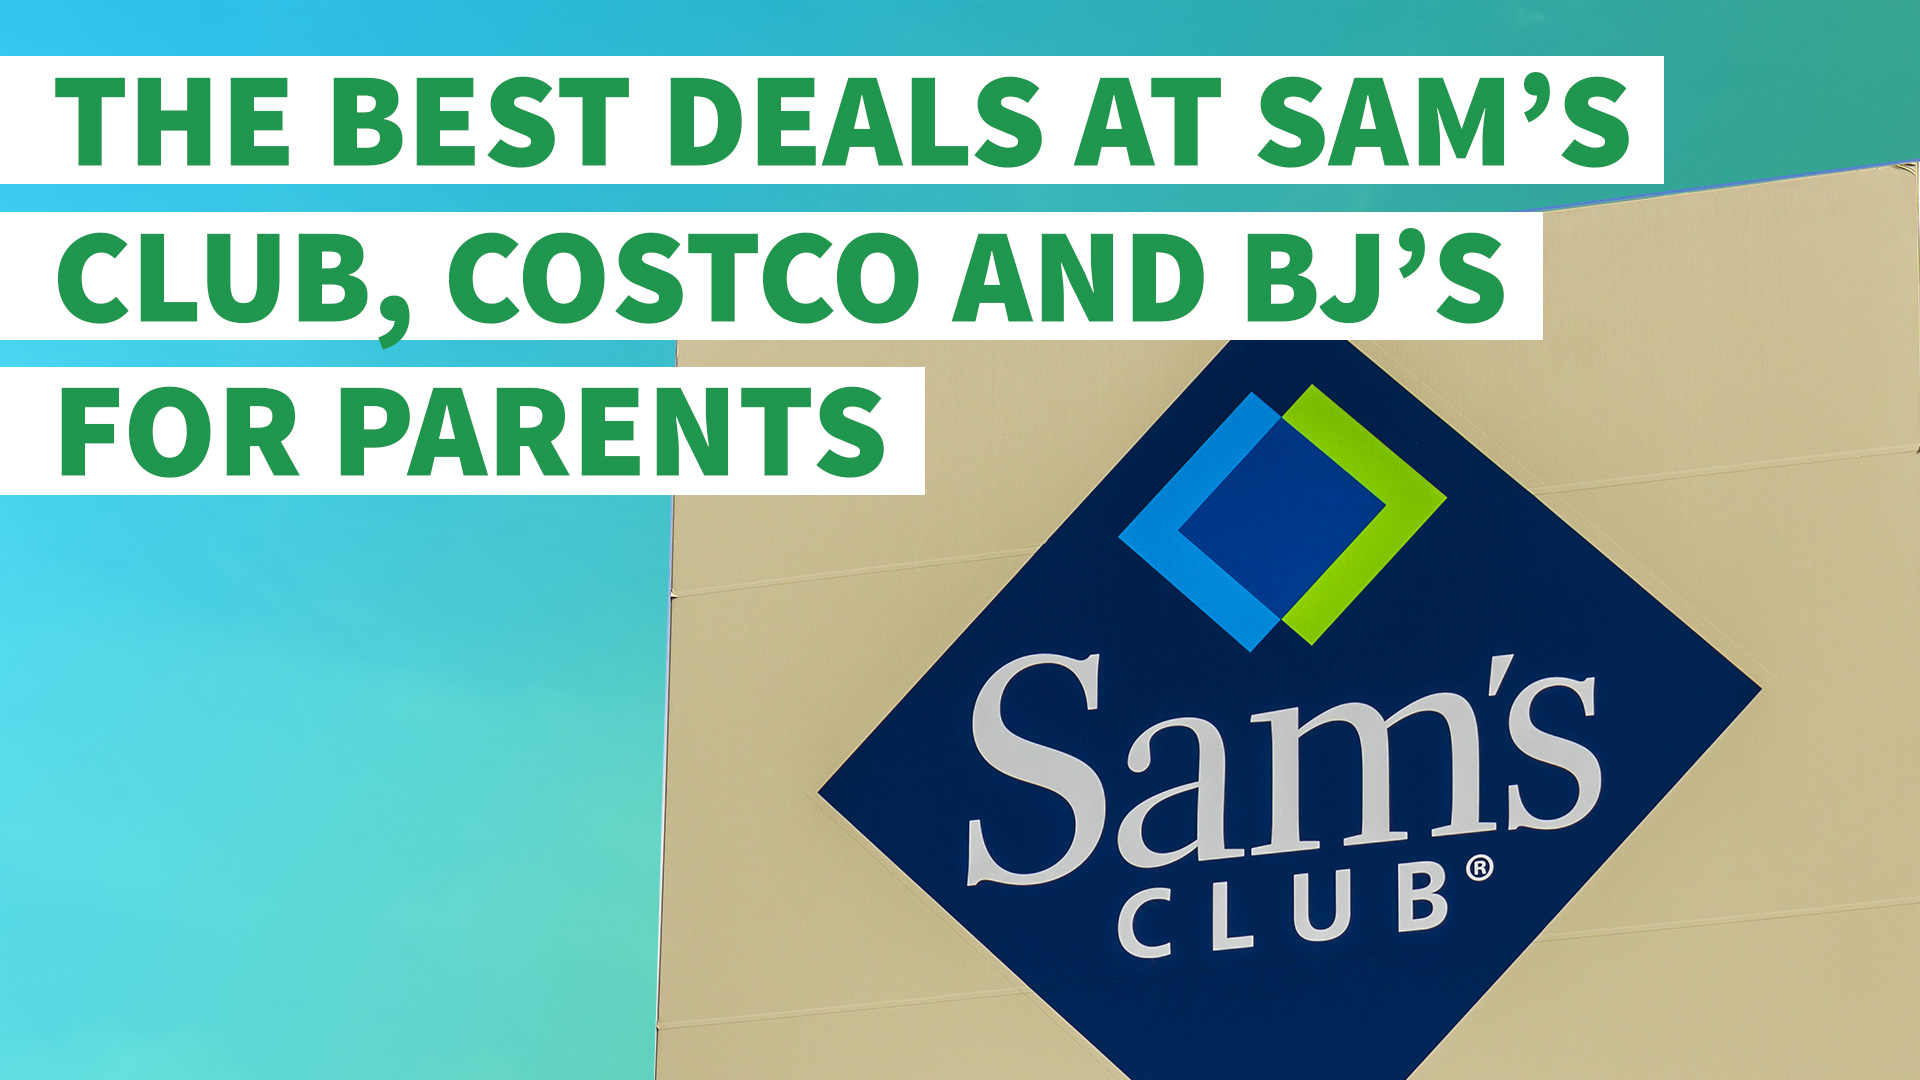 the best deals at sam s club costco and bj s for parents the best deals at sam s club costco and bj s for parents gobankingrates